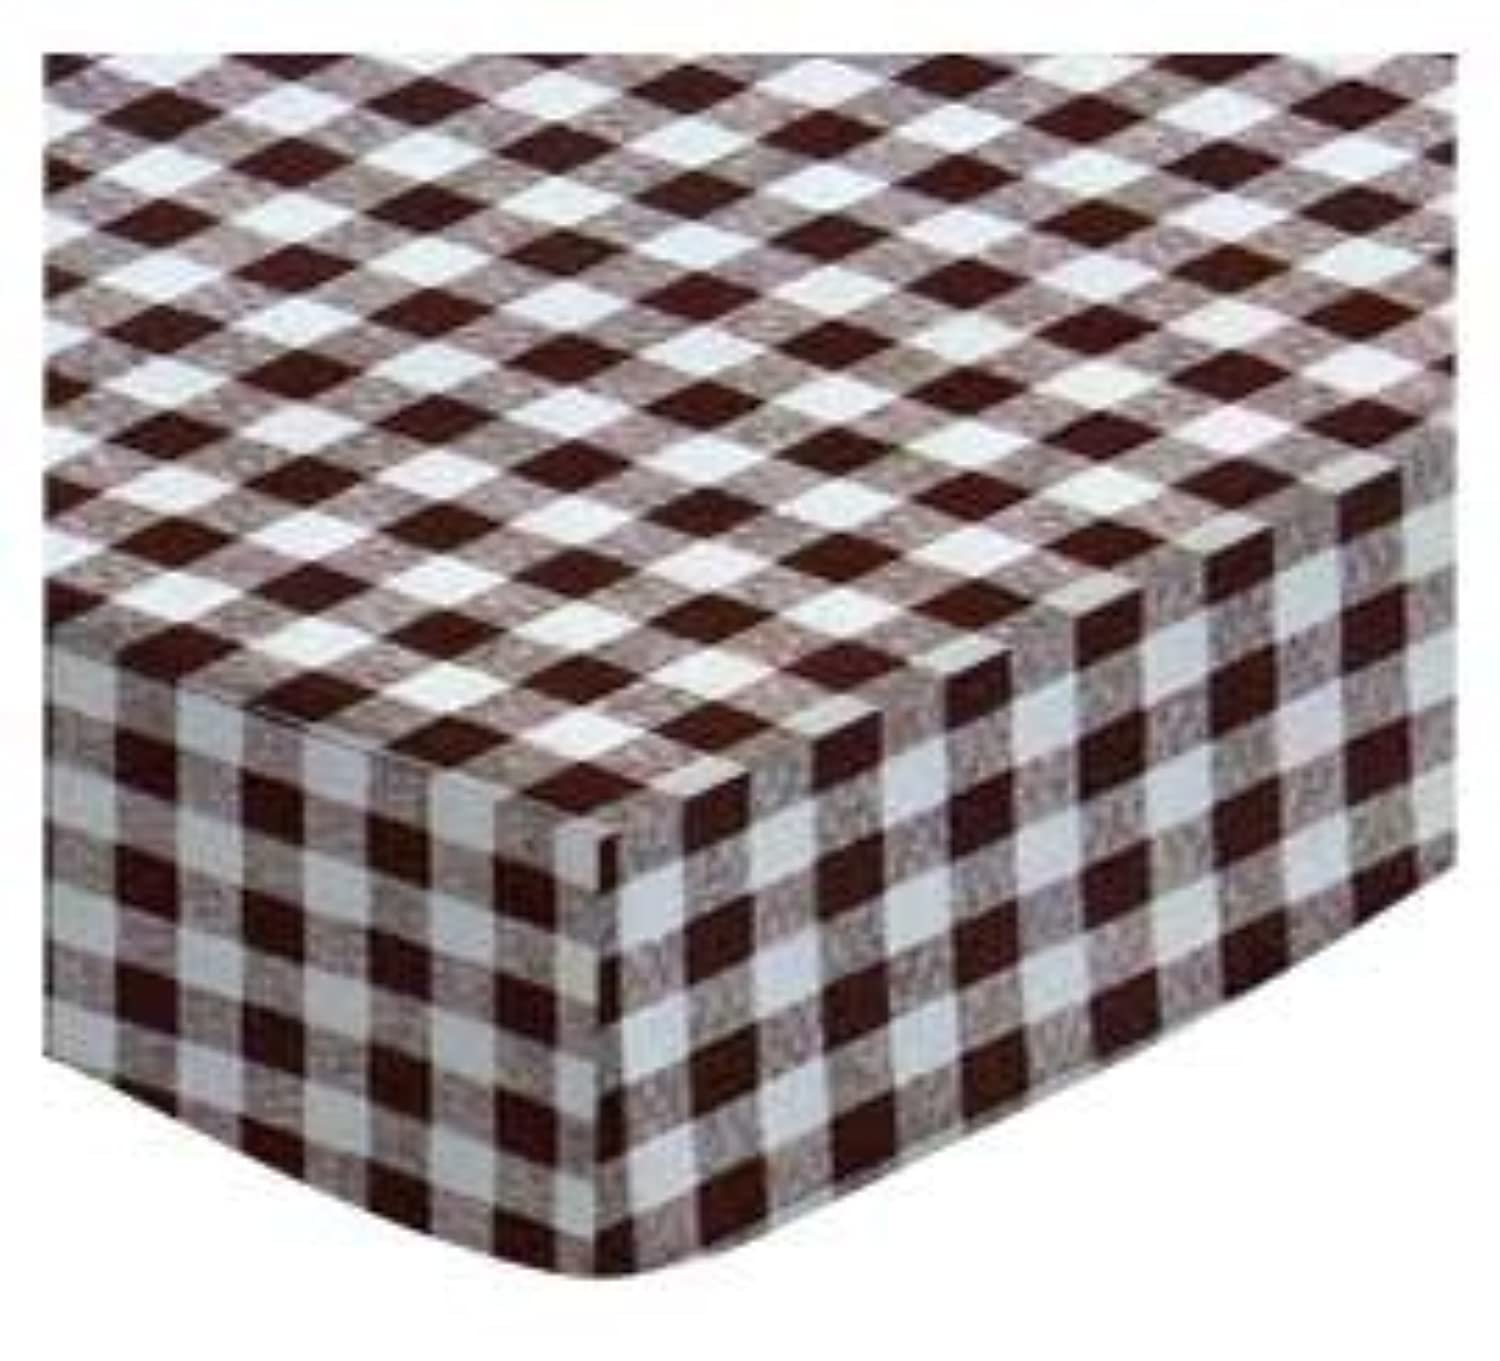 SheetWorld Fitted Cradle Sheet - Brown Gingham Check - Made In USA by sheetworld